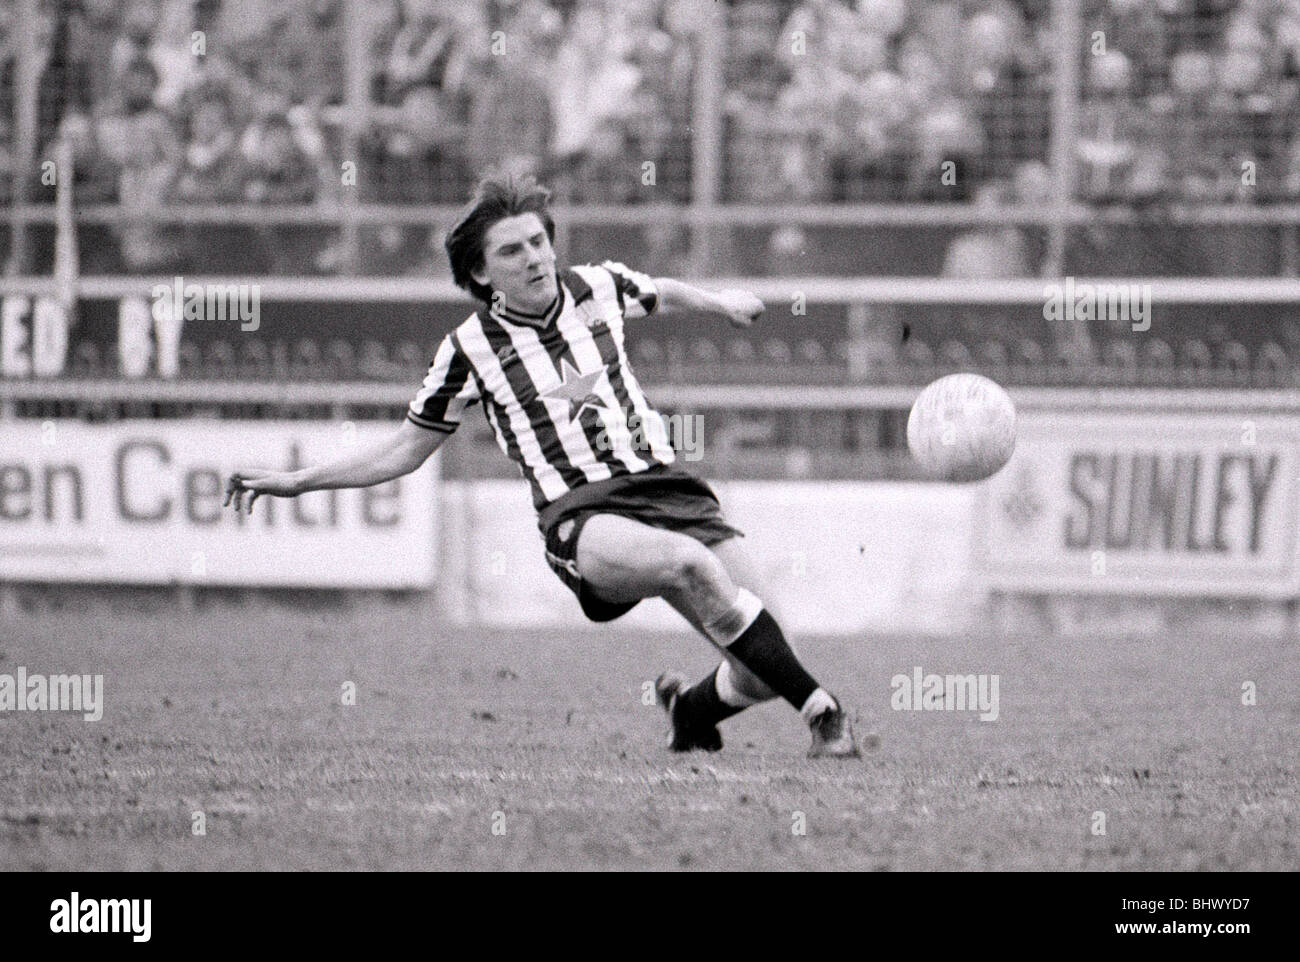 April 1984 Charlton Athletic v Newcastle United Football 1980s Football Player, Peter Beardsley - Stock Image